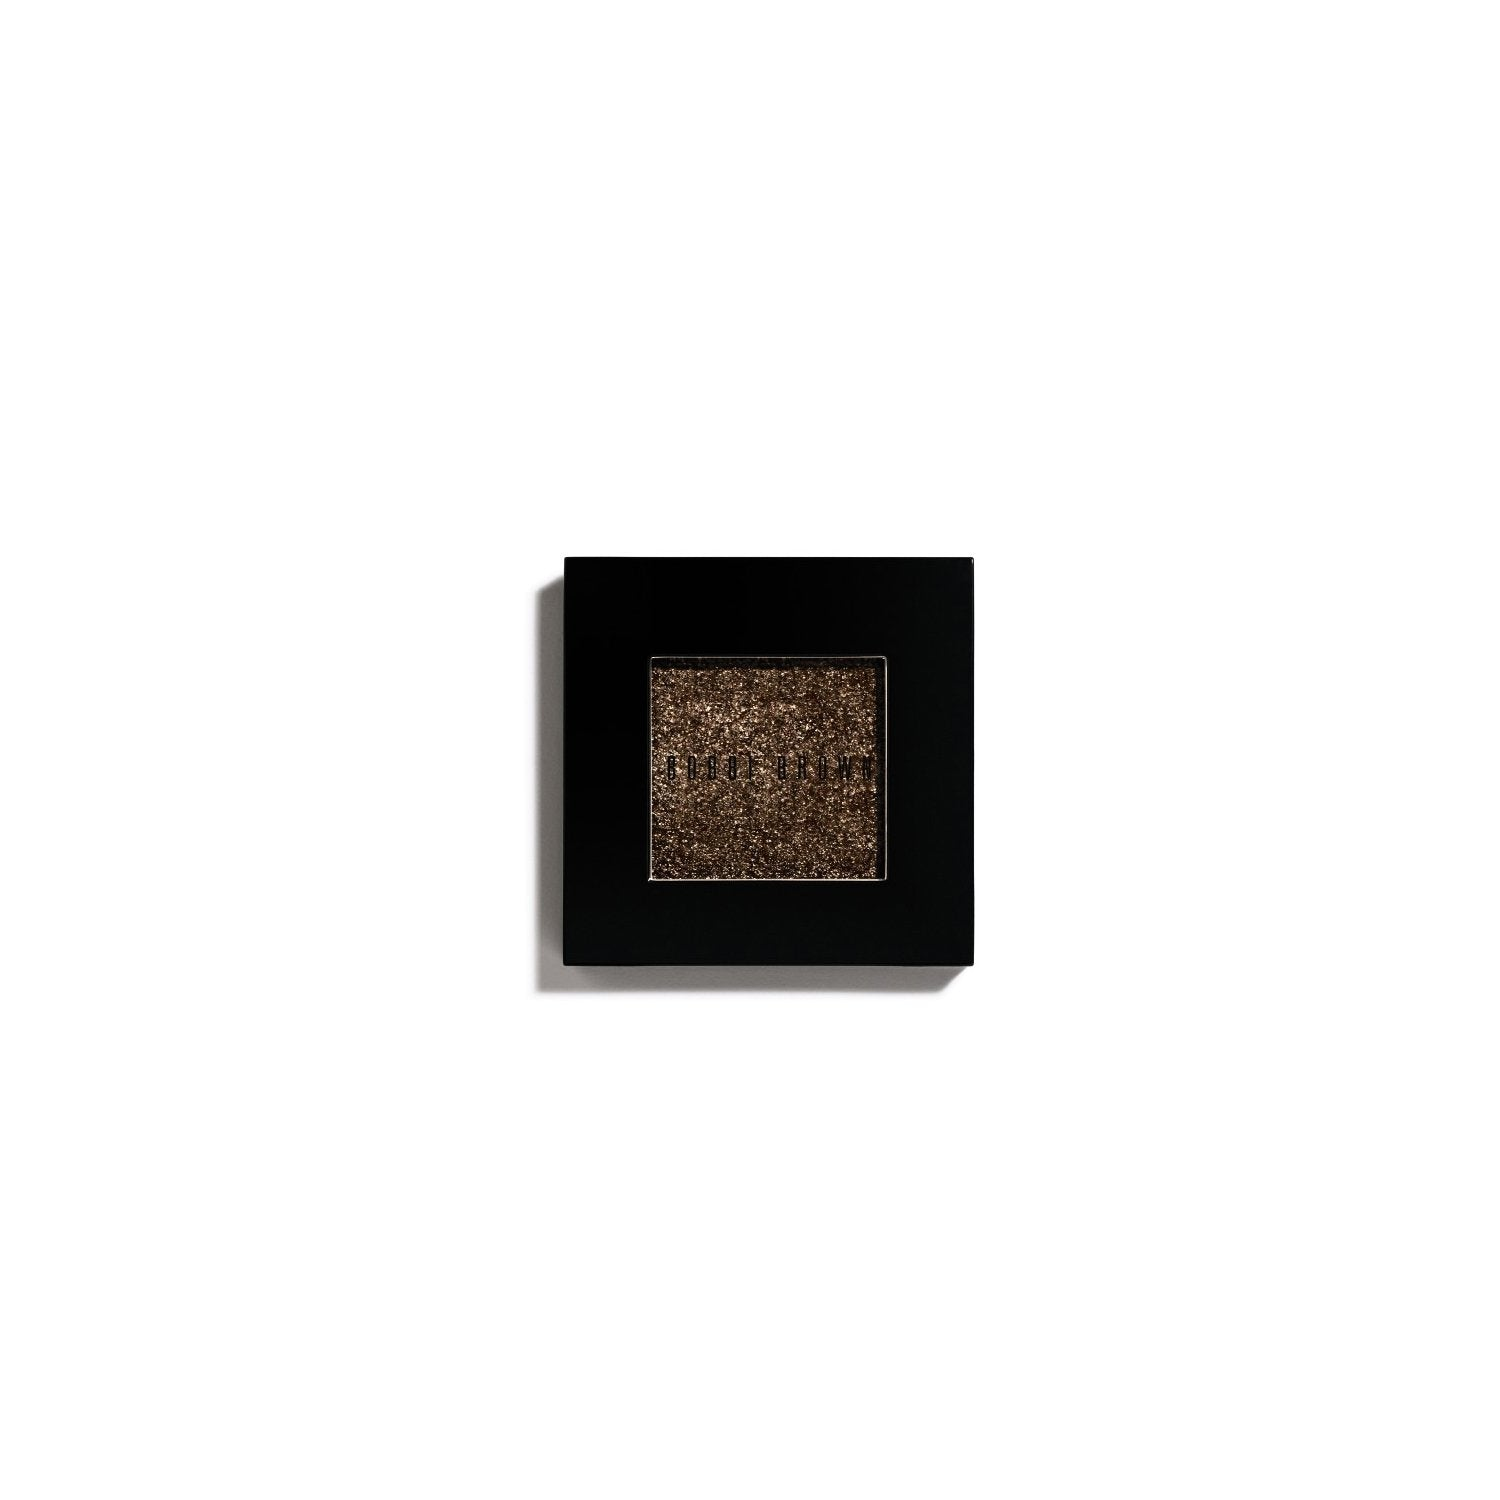 Bobbi Brown Sparkle Eye Shadow Shade 28 Allspice